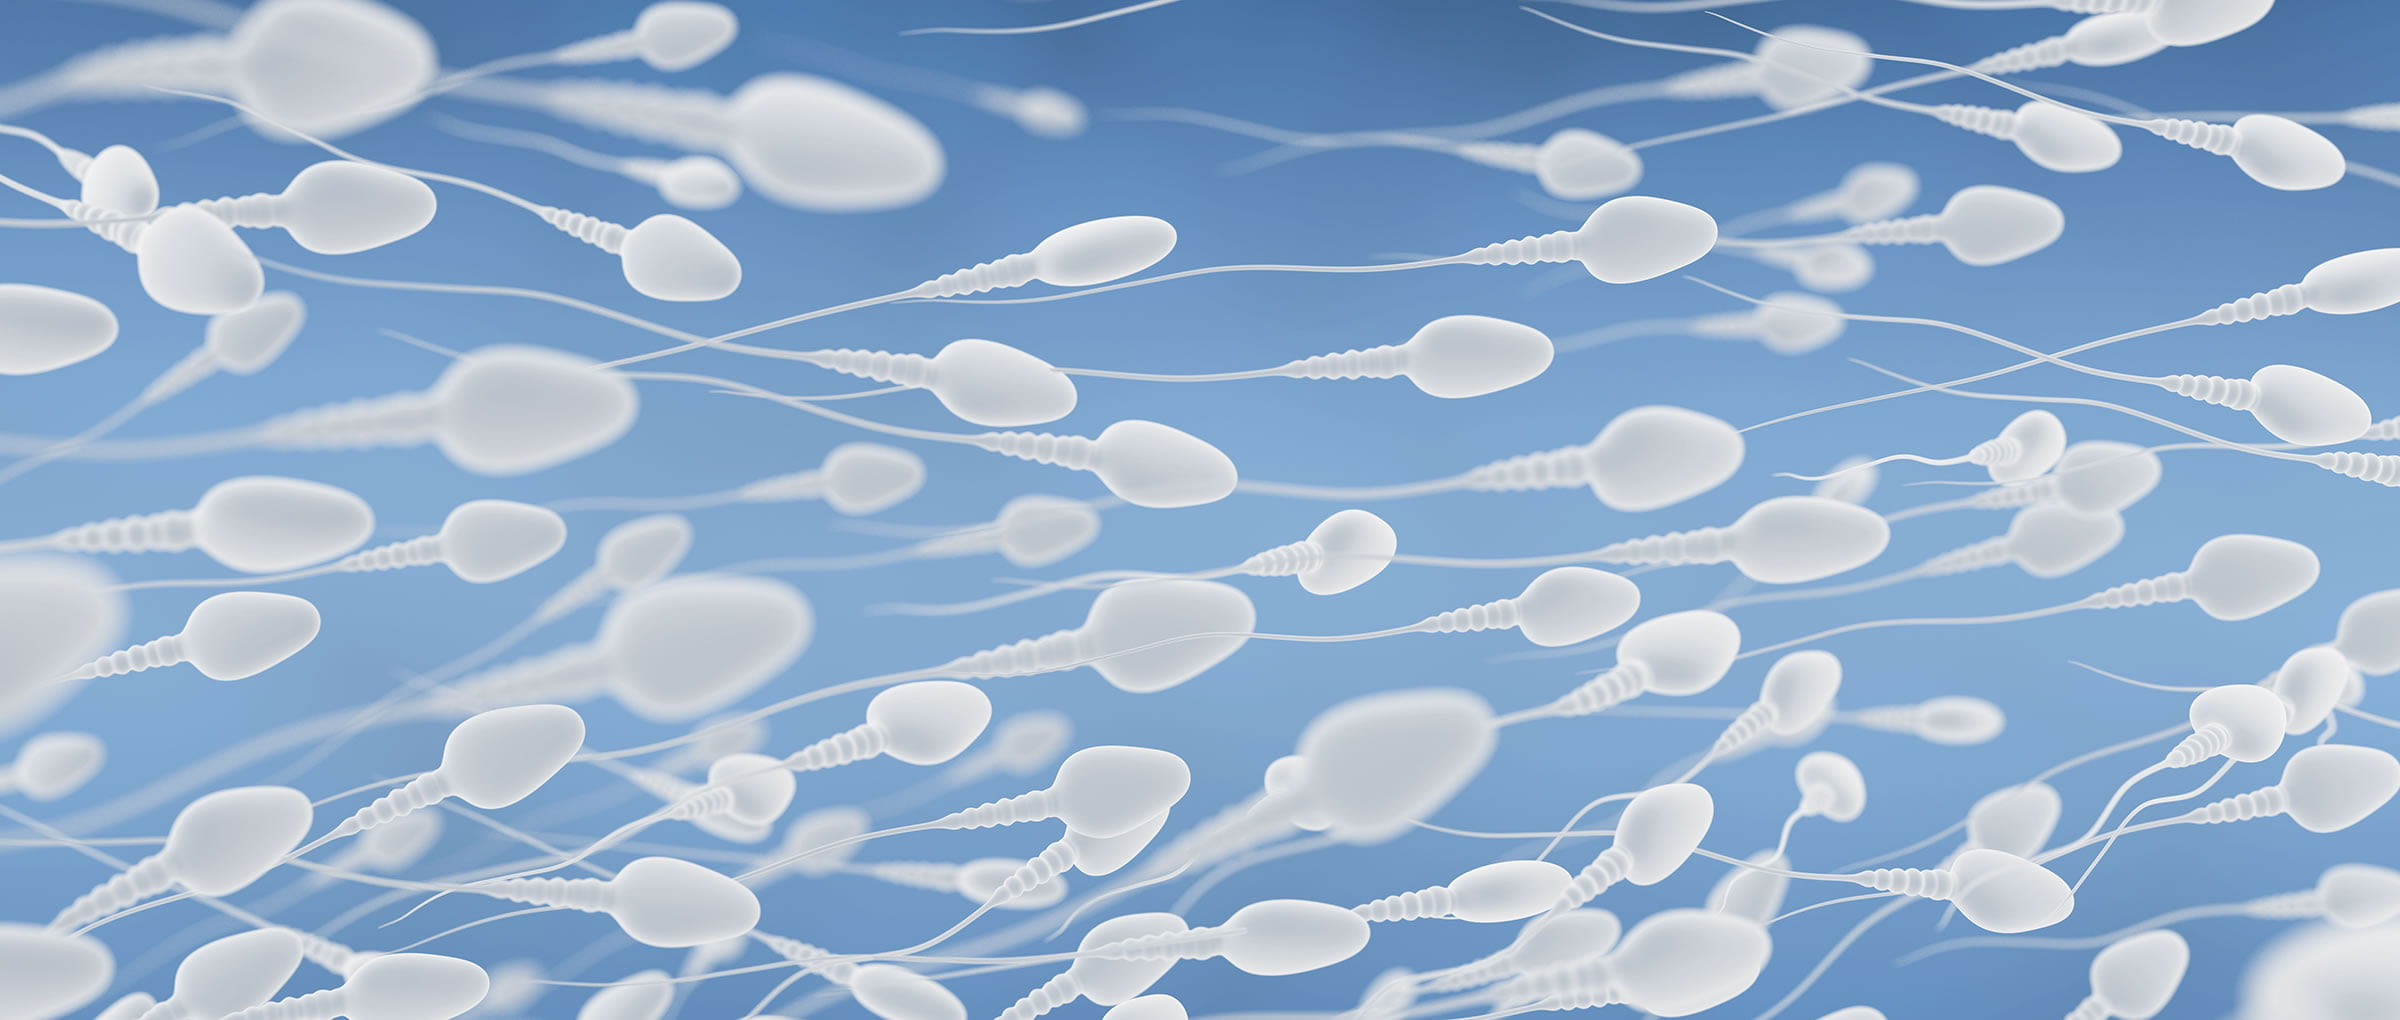 IVF with Donor Sperm in Spain - Indications, Process & Cost